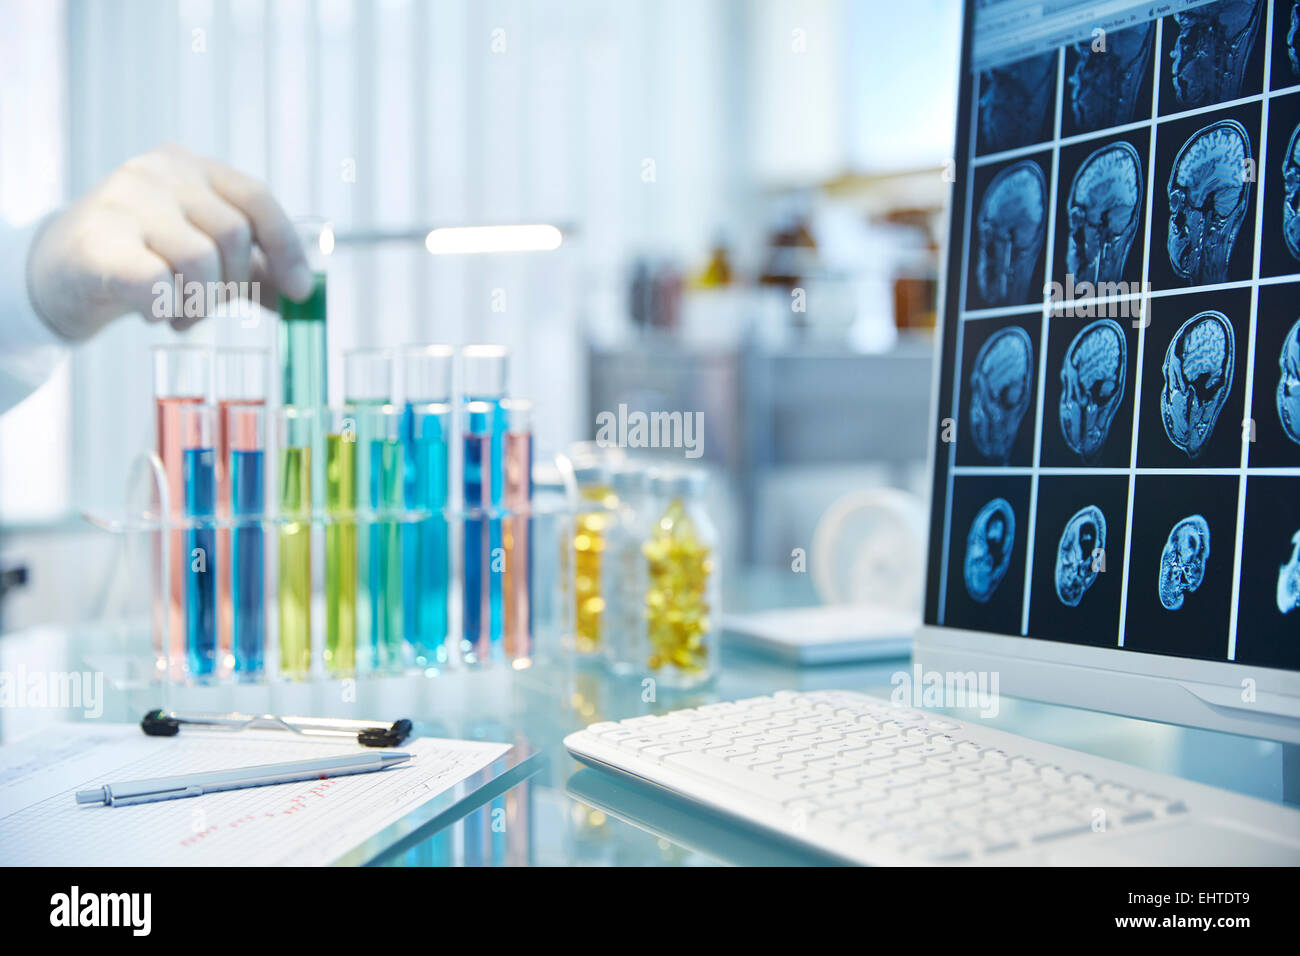 Hand reaching for vial with green fluid,monitor with x-rays in foreground - Stock Image